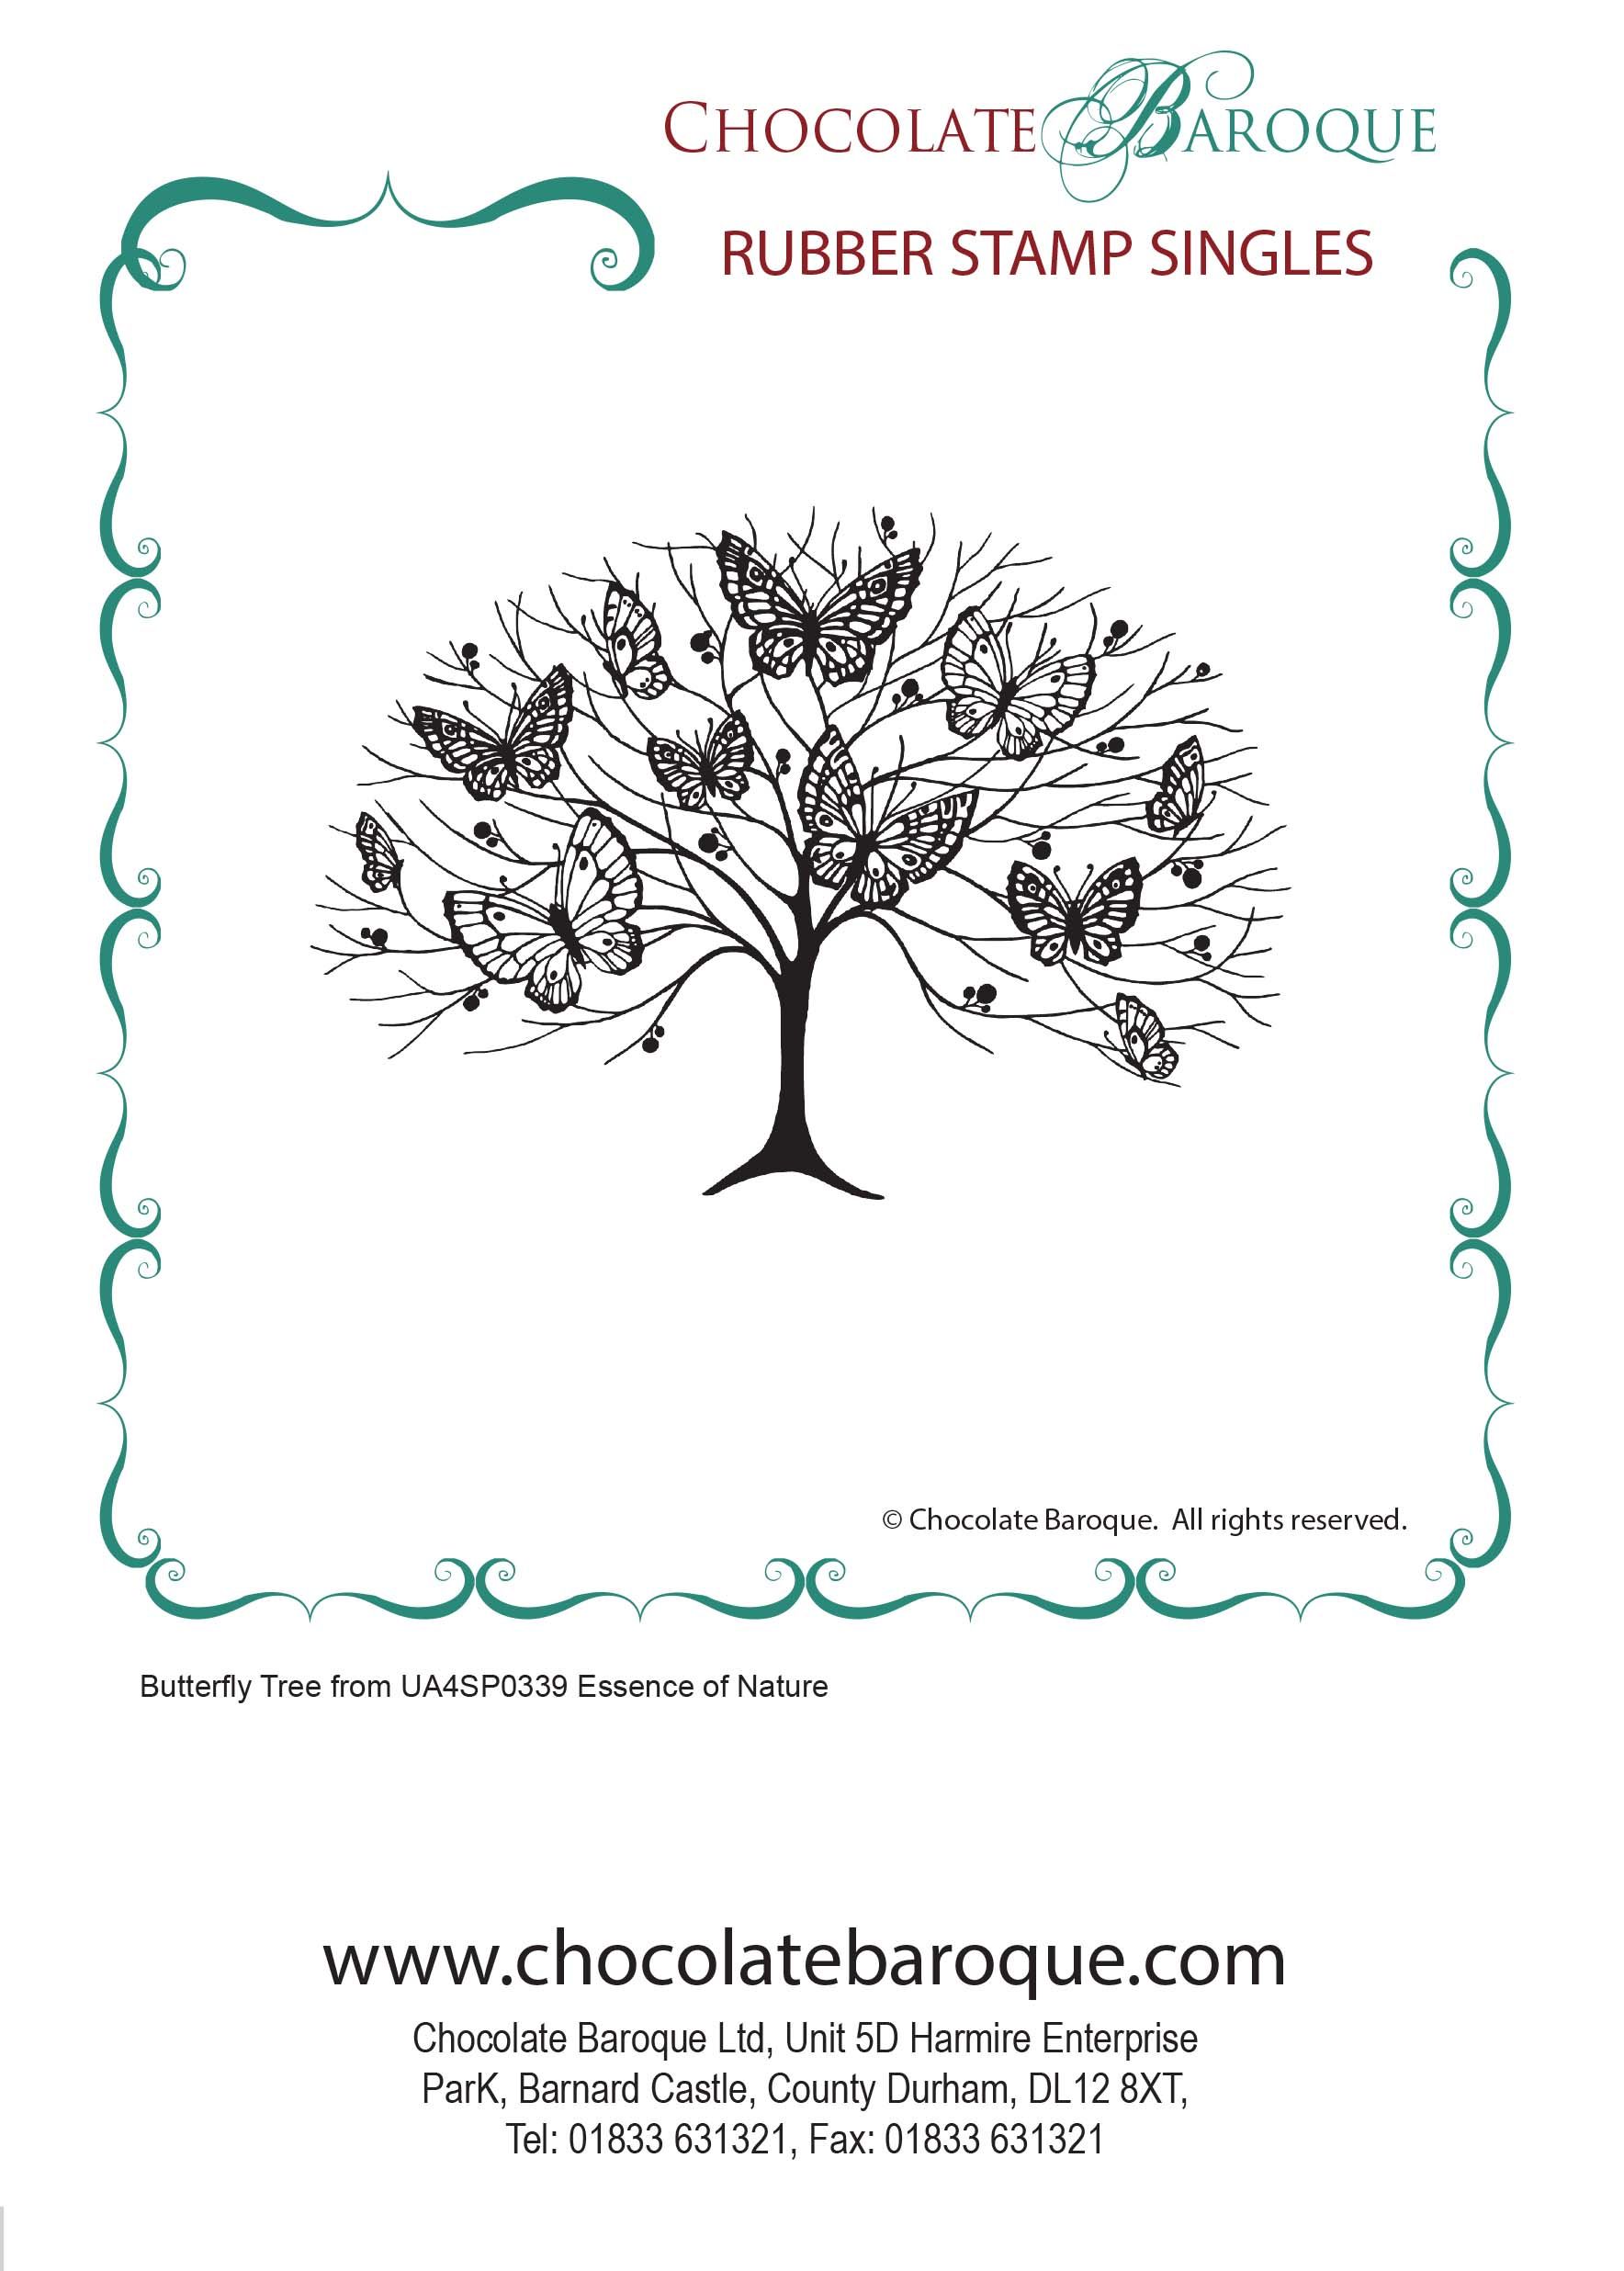 Butterfly Tree single unmounted rubber stamp - Chocolate Baroque